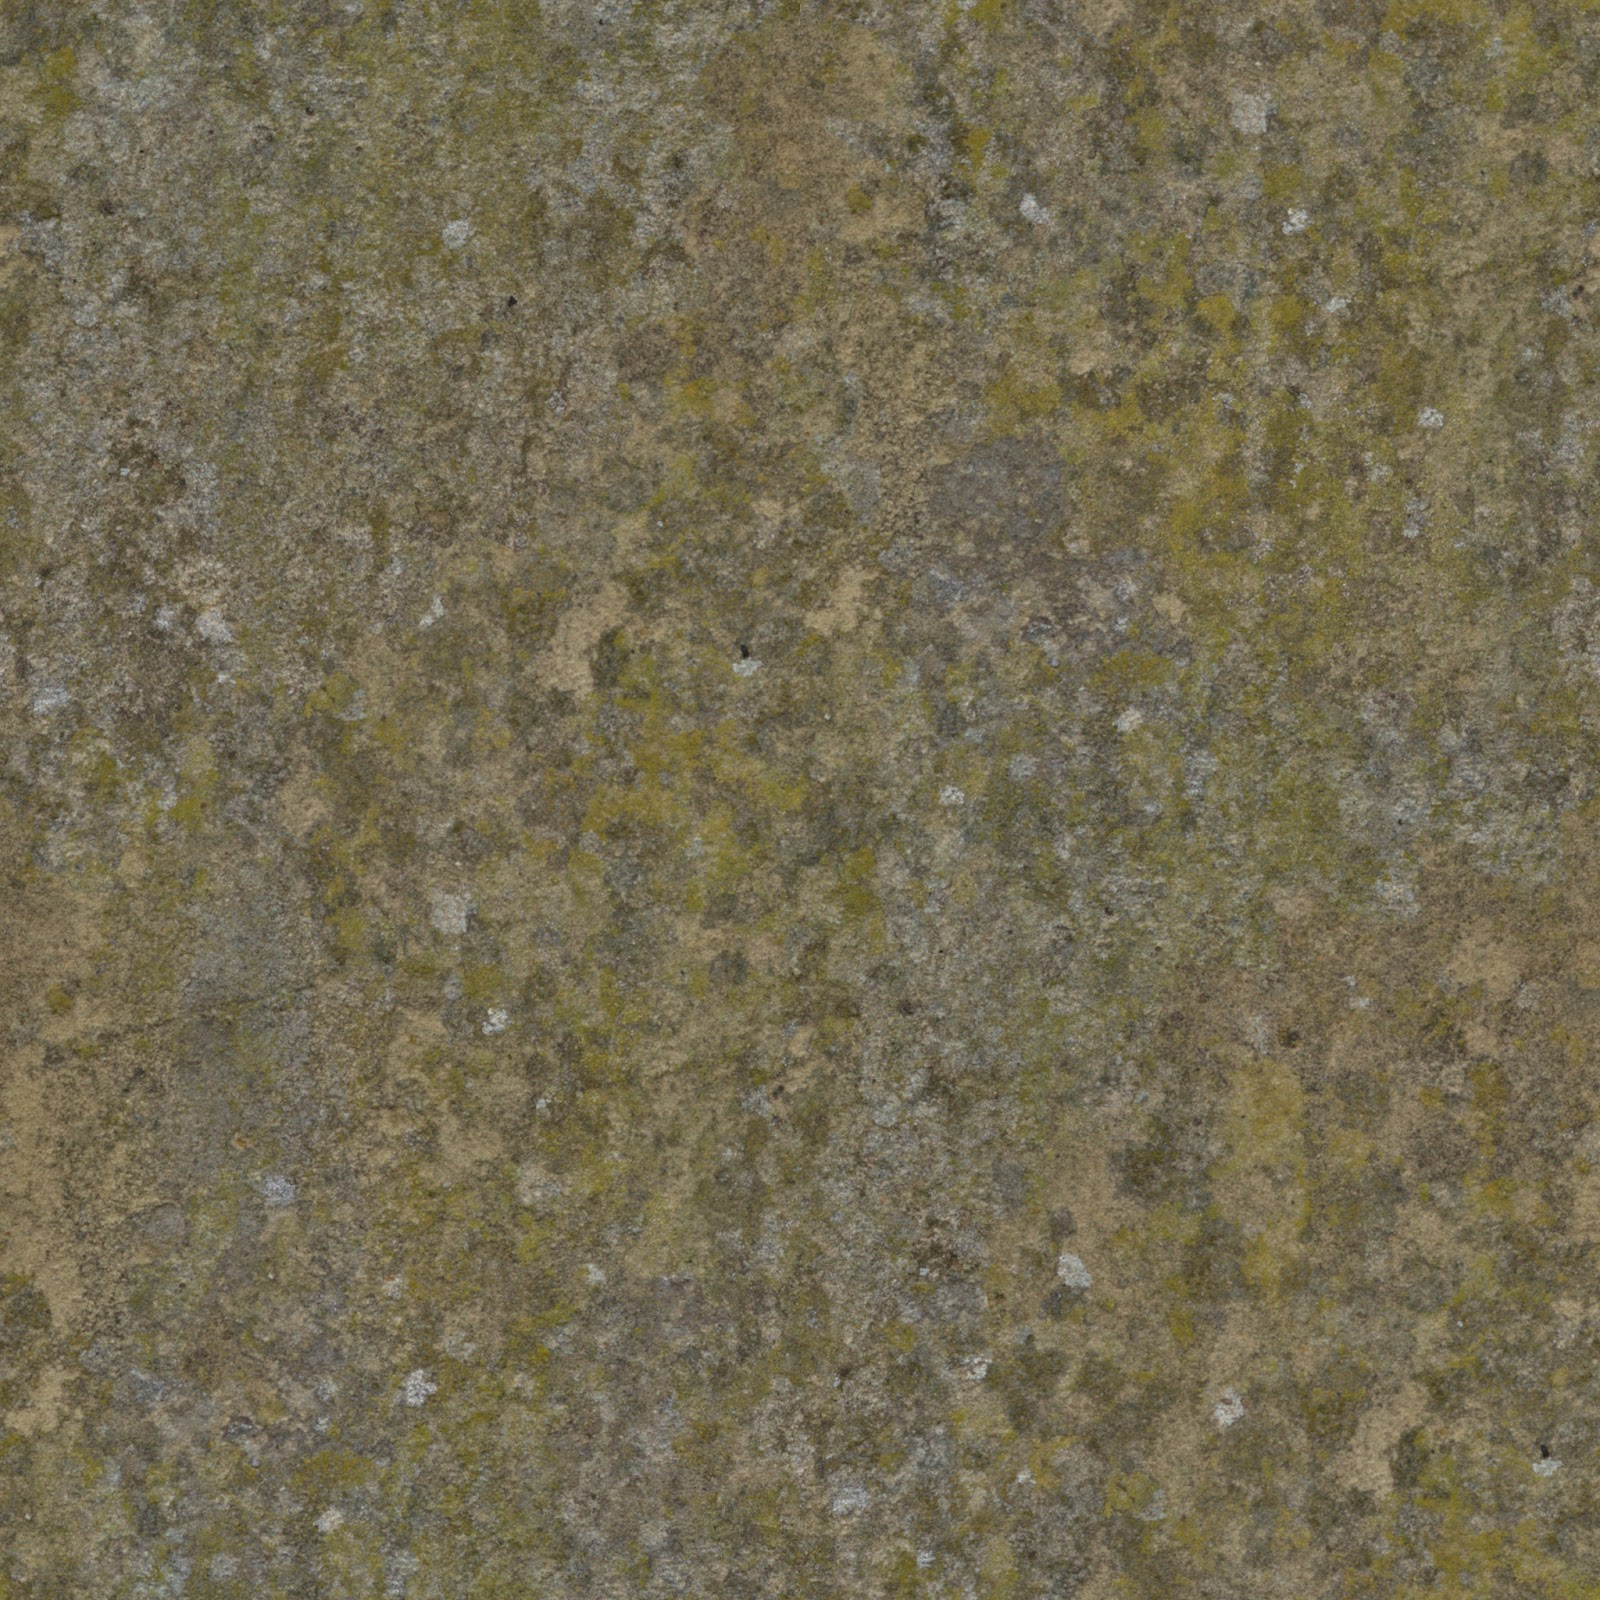 Stucco wall grunge feb_2015_2 seamless texture 2048x2048